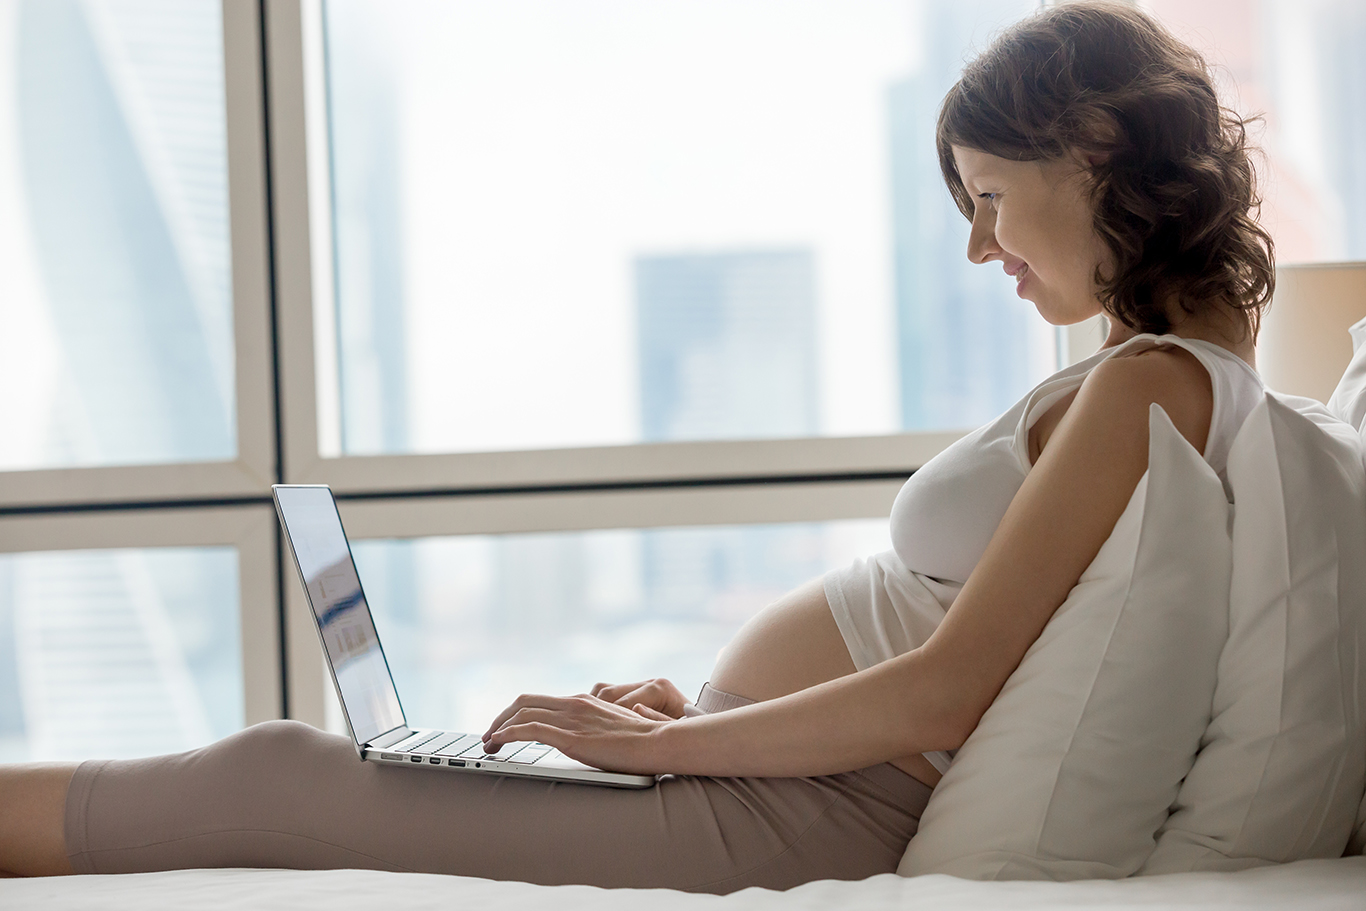 Moving While Pregnant Tip - Plan on Working